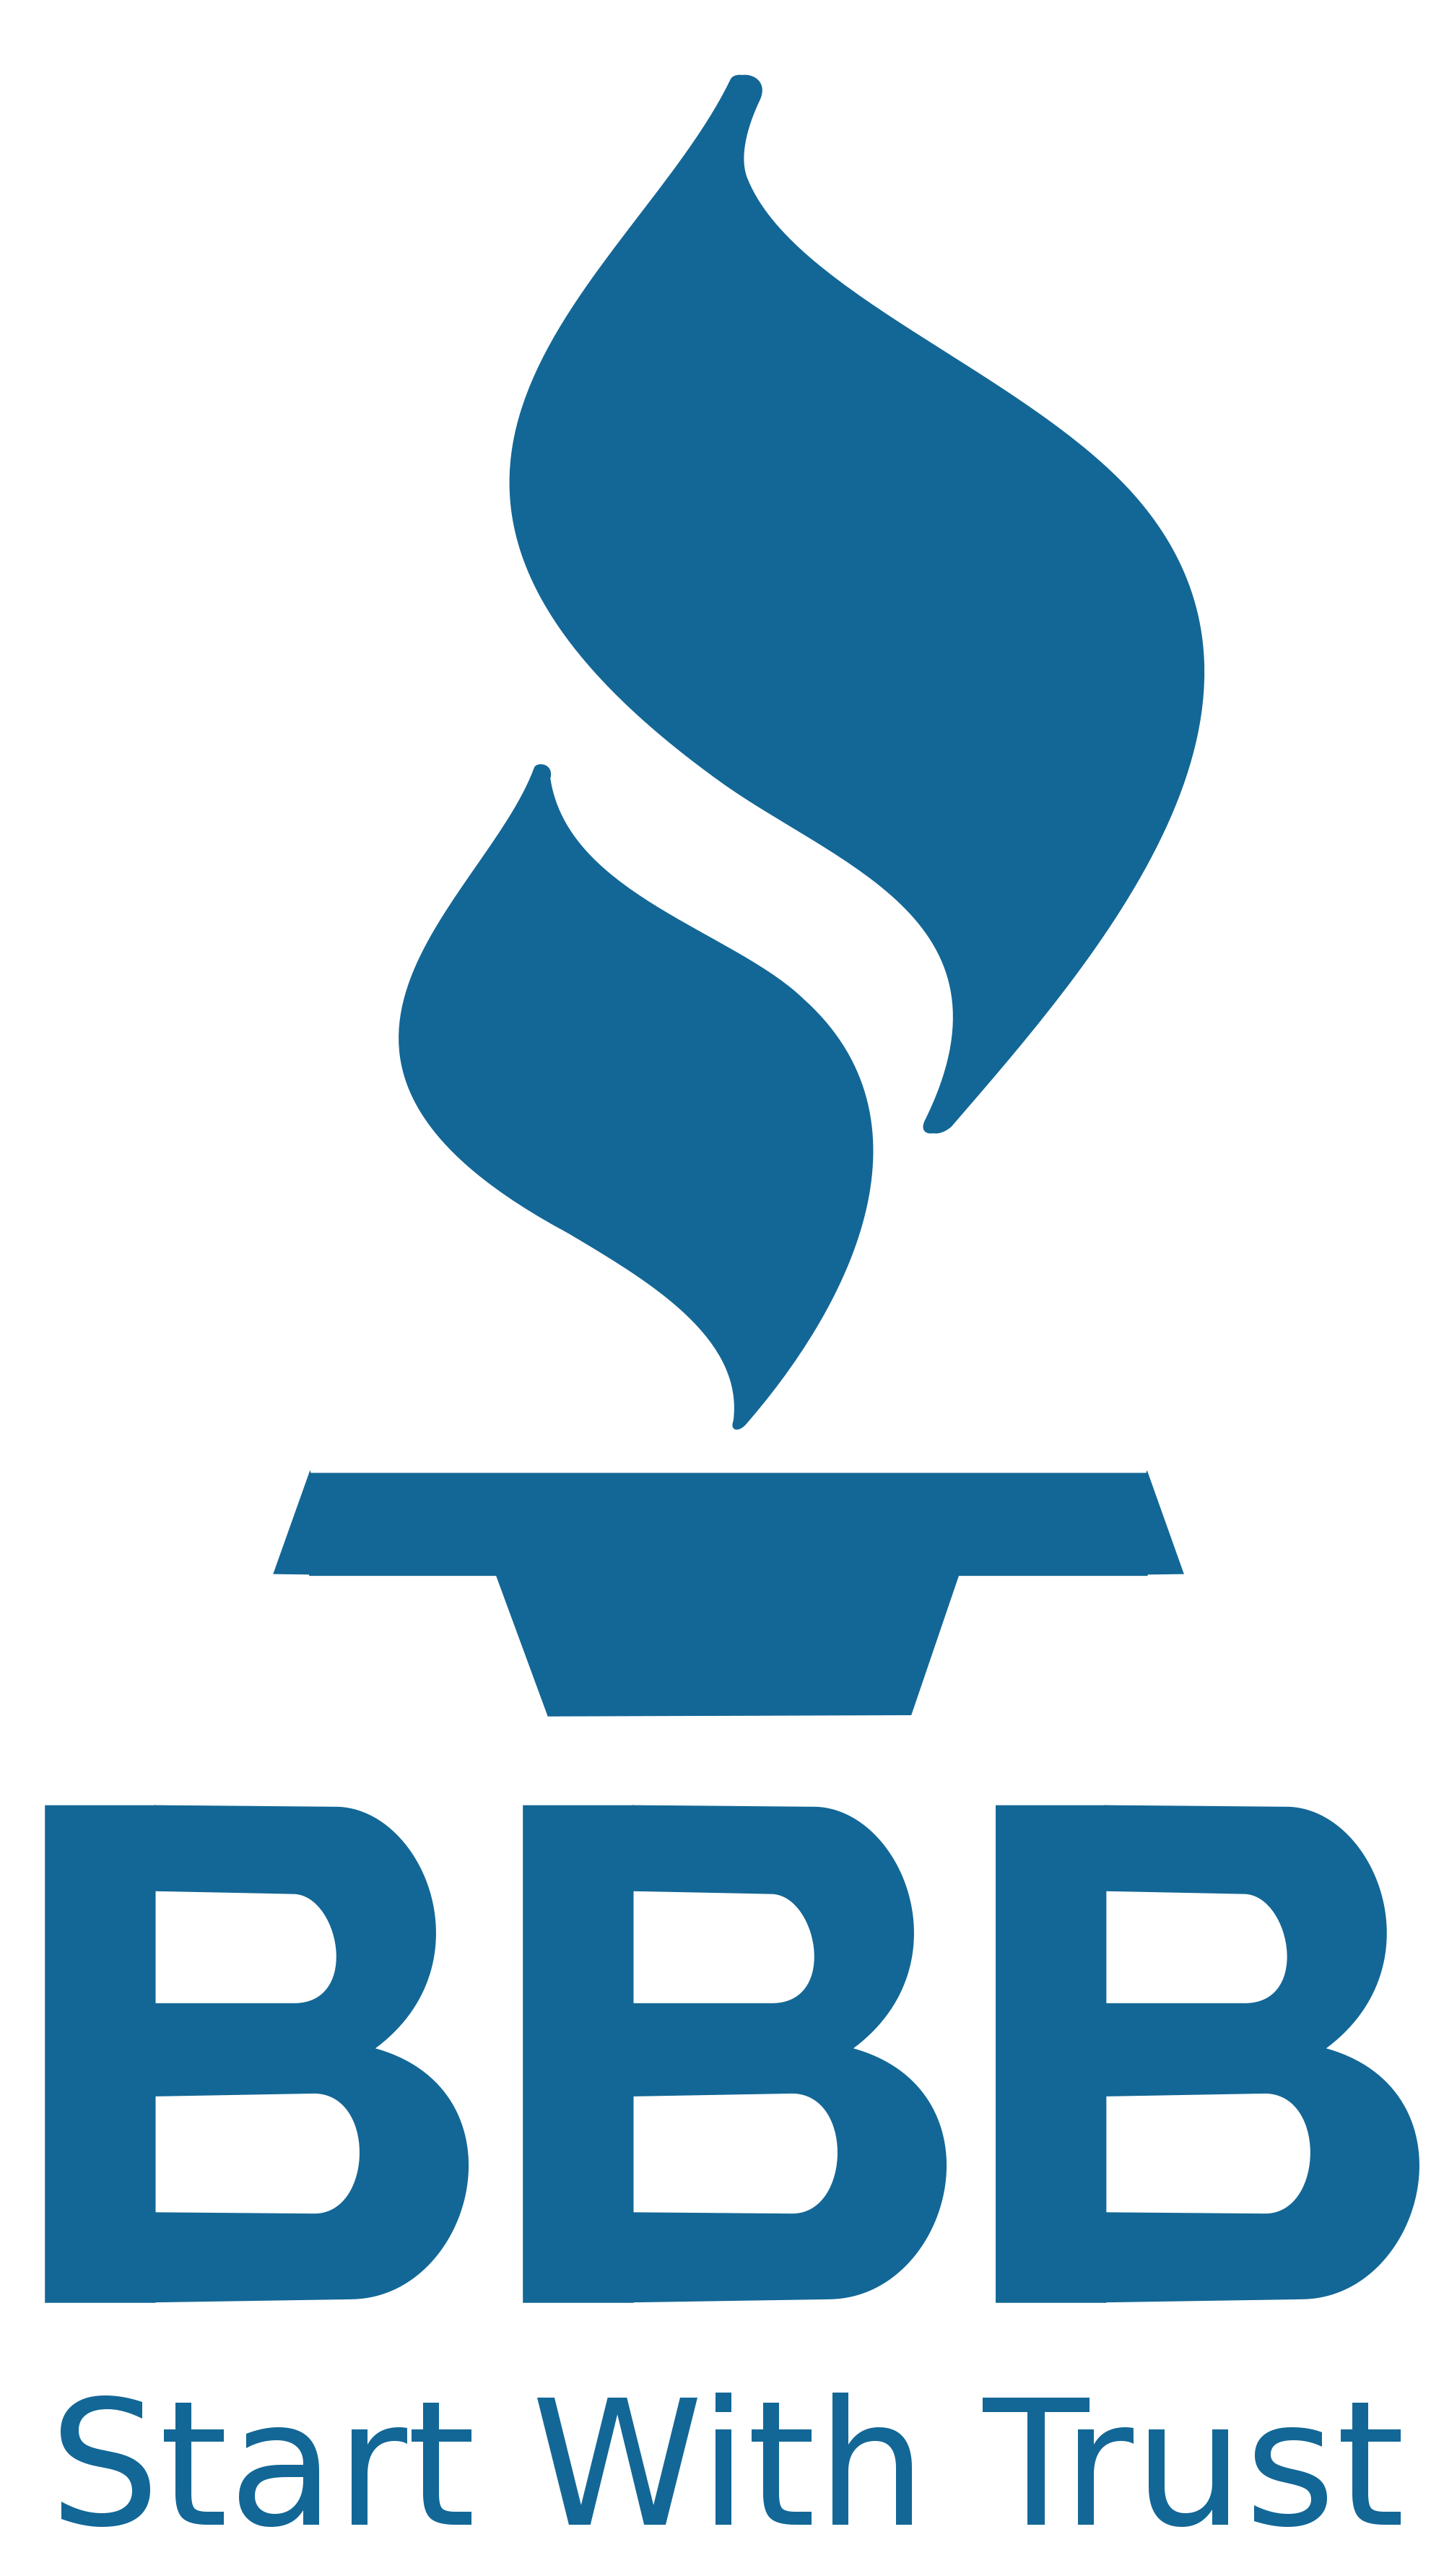 BBB Logo - File:Better Business Bureau.svg - Wikimedia Commons